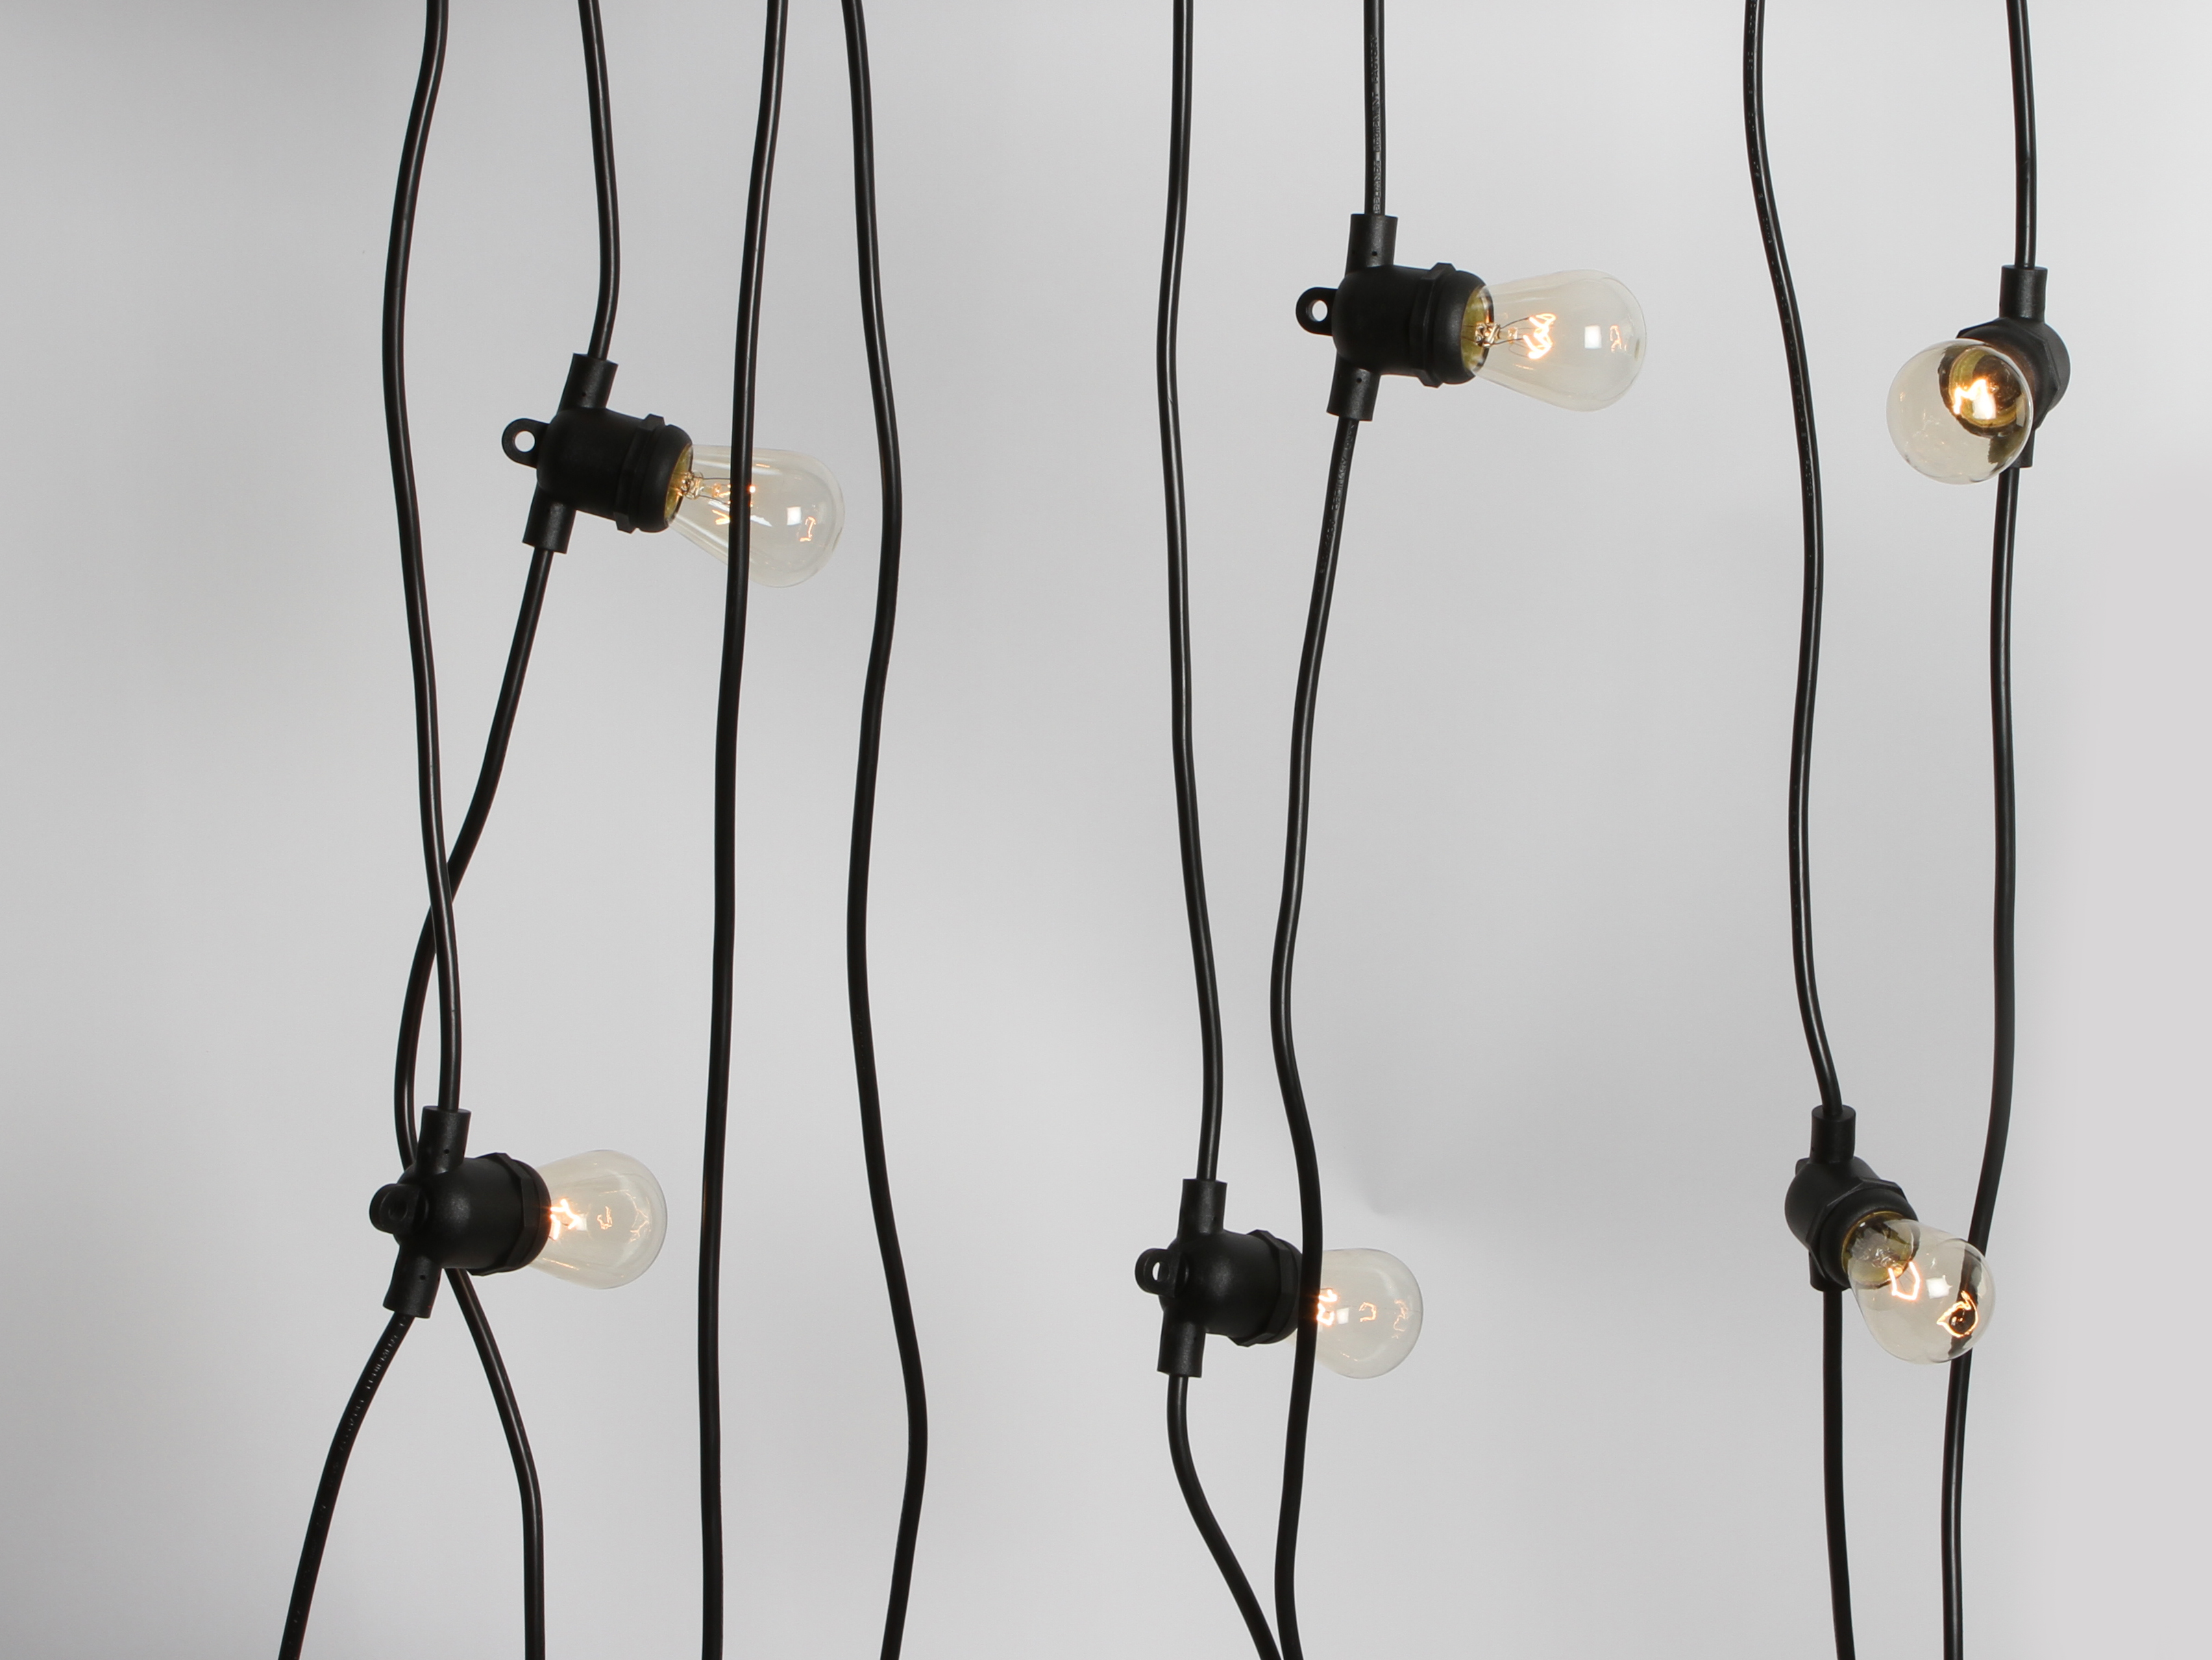 String Lights For Marquee : 5x10m String Lights Festoon Wedding Fairy Outdoor Marquee Retro Vintage Black eBay